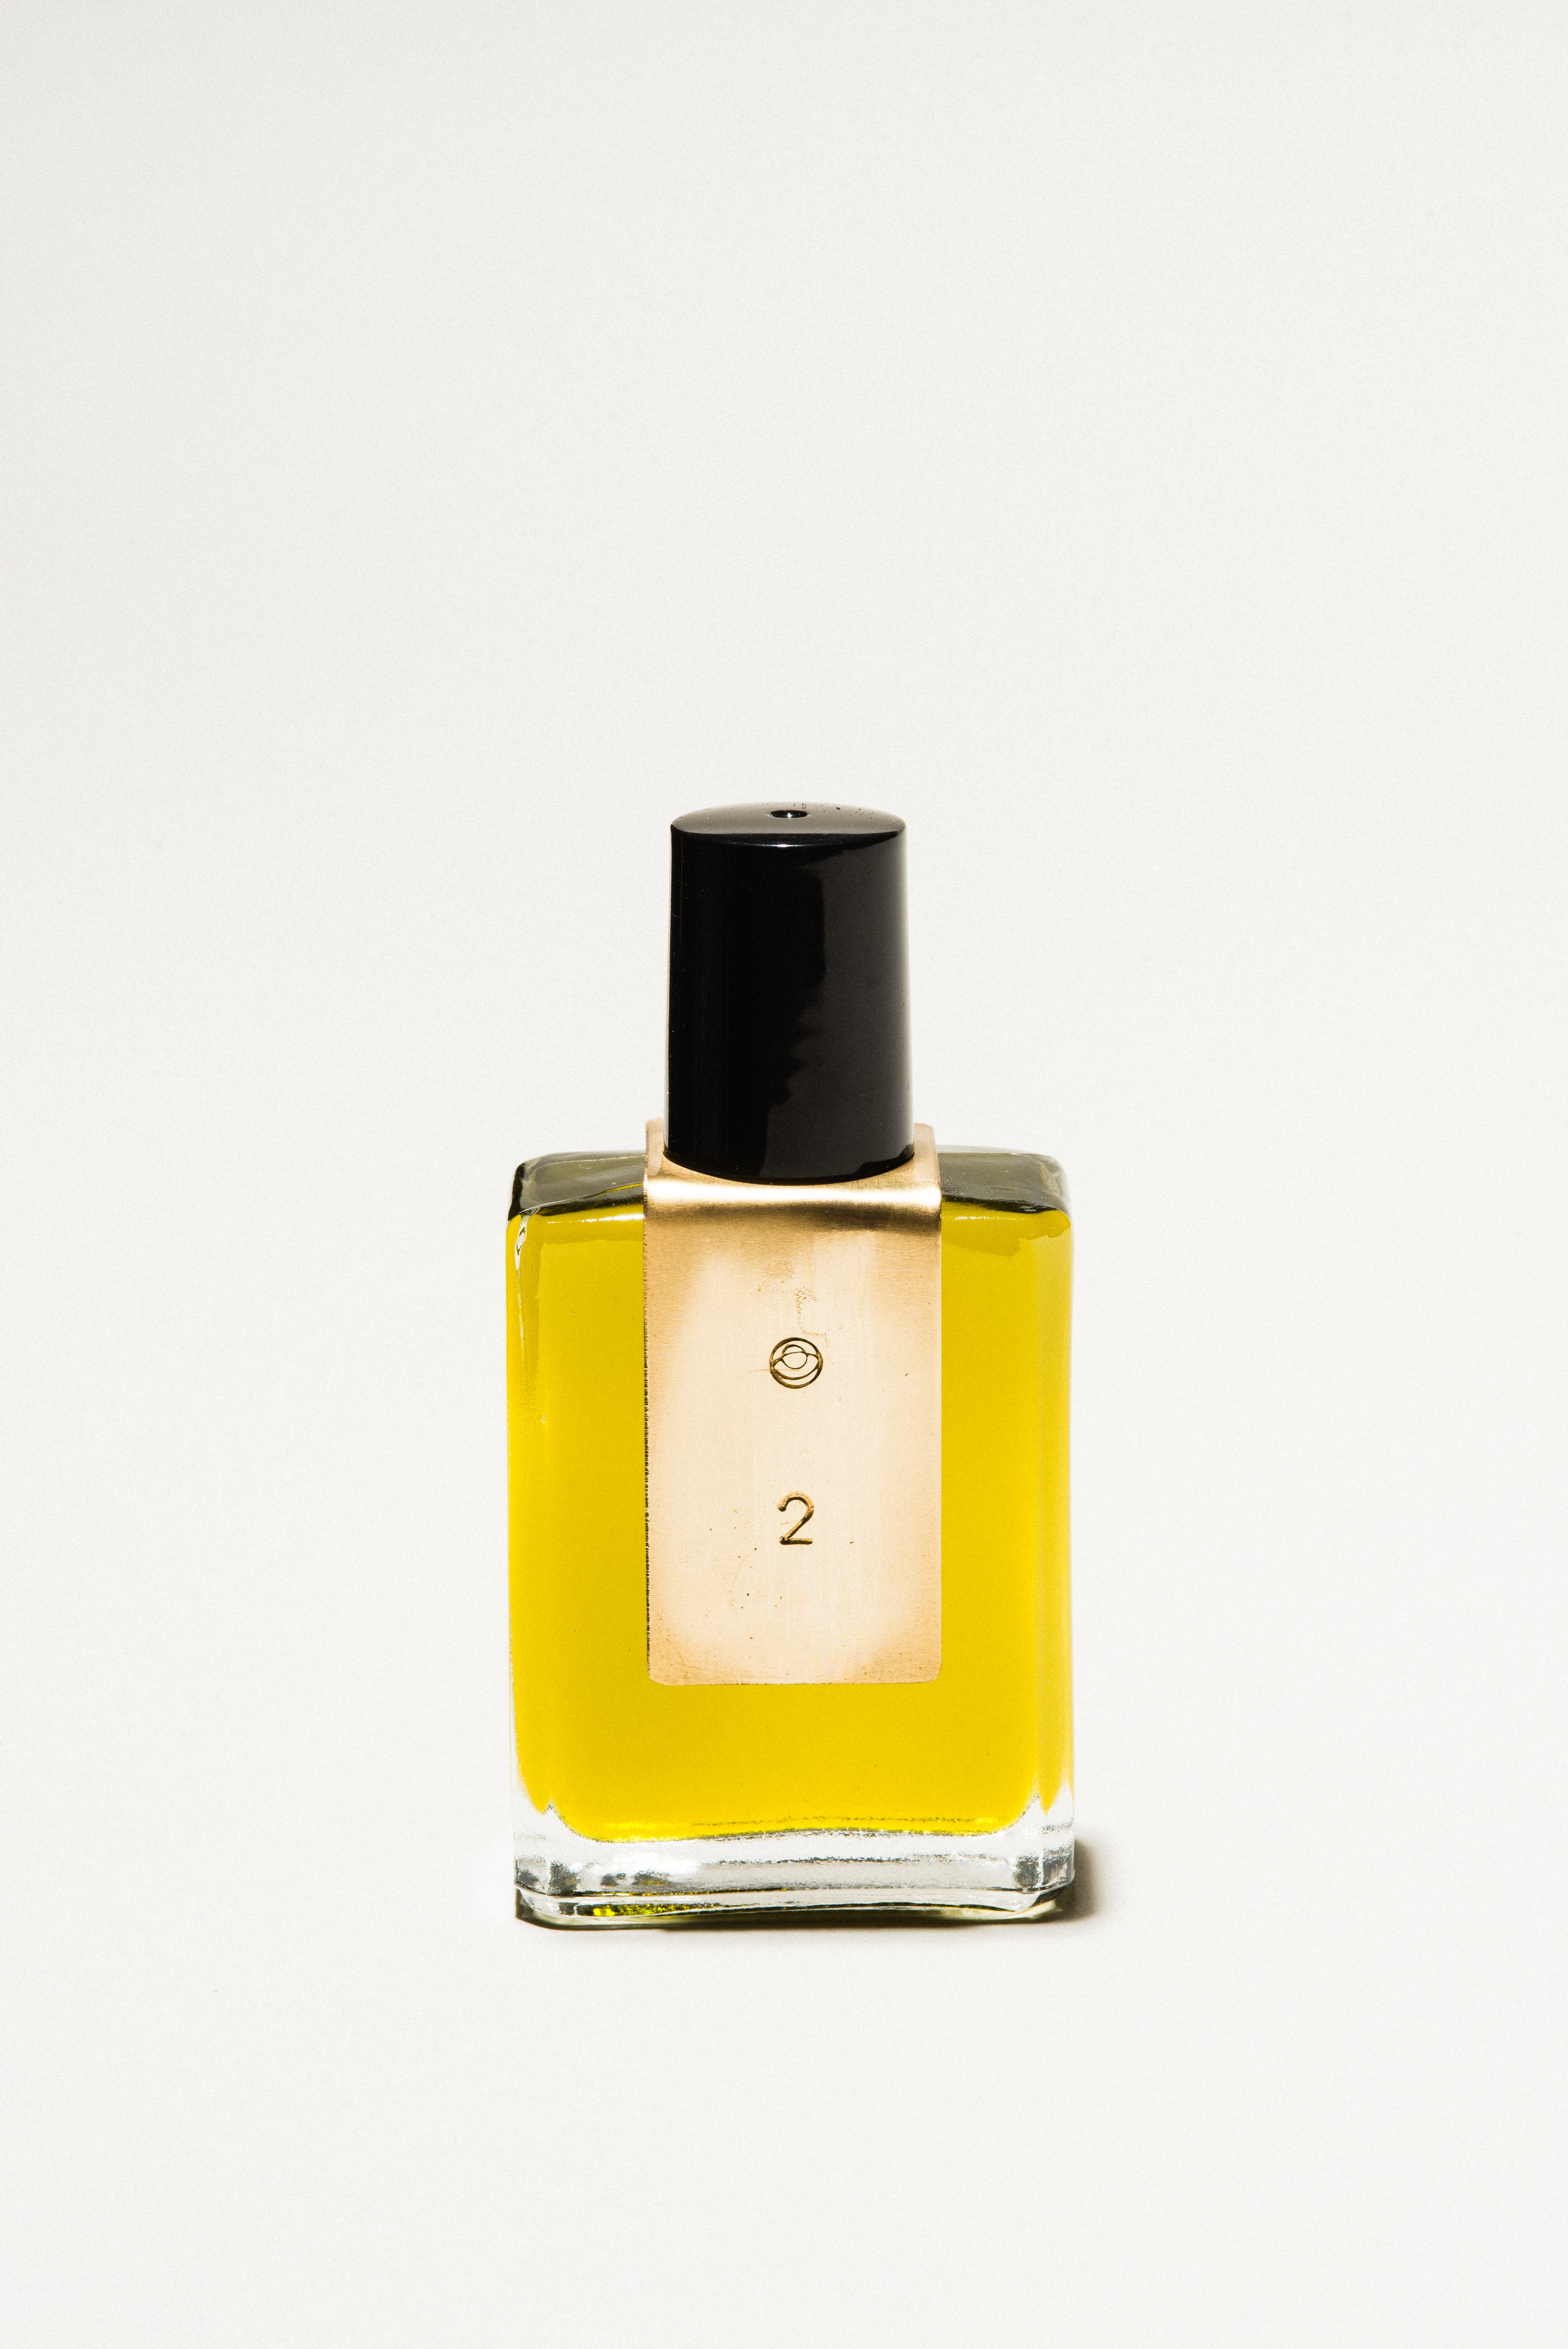 Fragrance Oil No. 2 - 2 - on a blanket in the park warm beams and sweater weather15ml unisex fragrance blended in studio hand smithed label$45